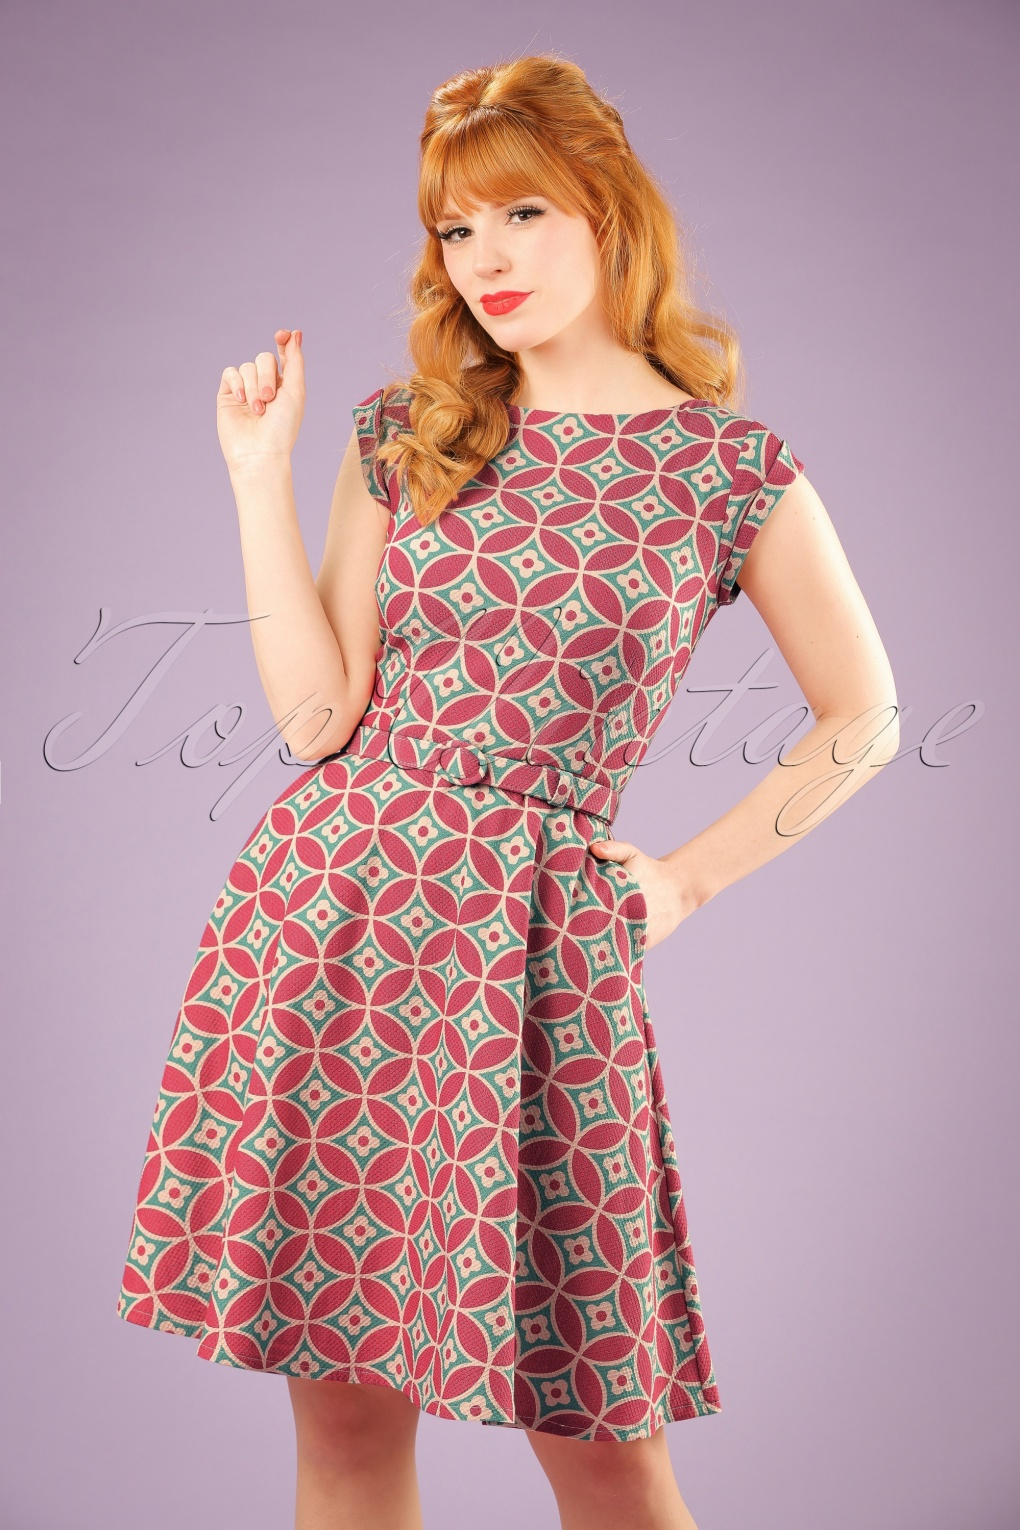 1960s Style Dresses- Retro Inspired Fashion 60s Betty Mozaik Dress in Opal and Pink £90.92 AT vintagedancer.com